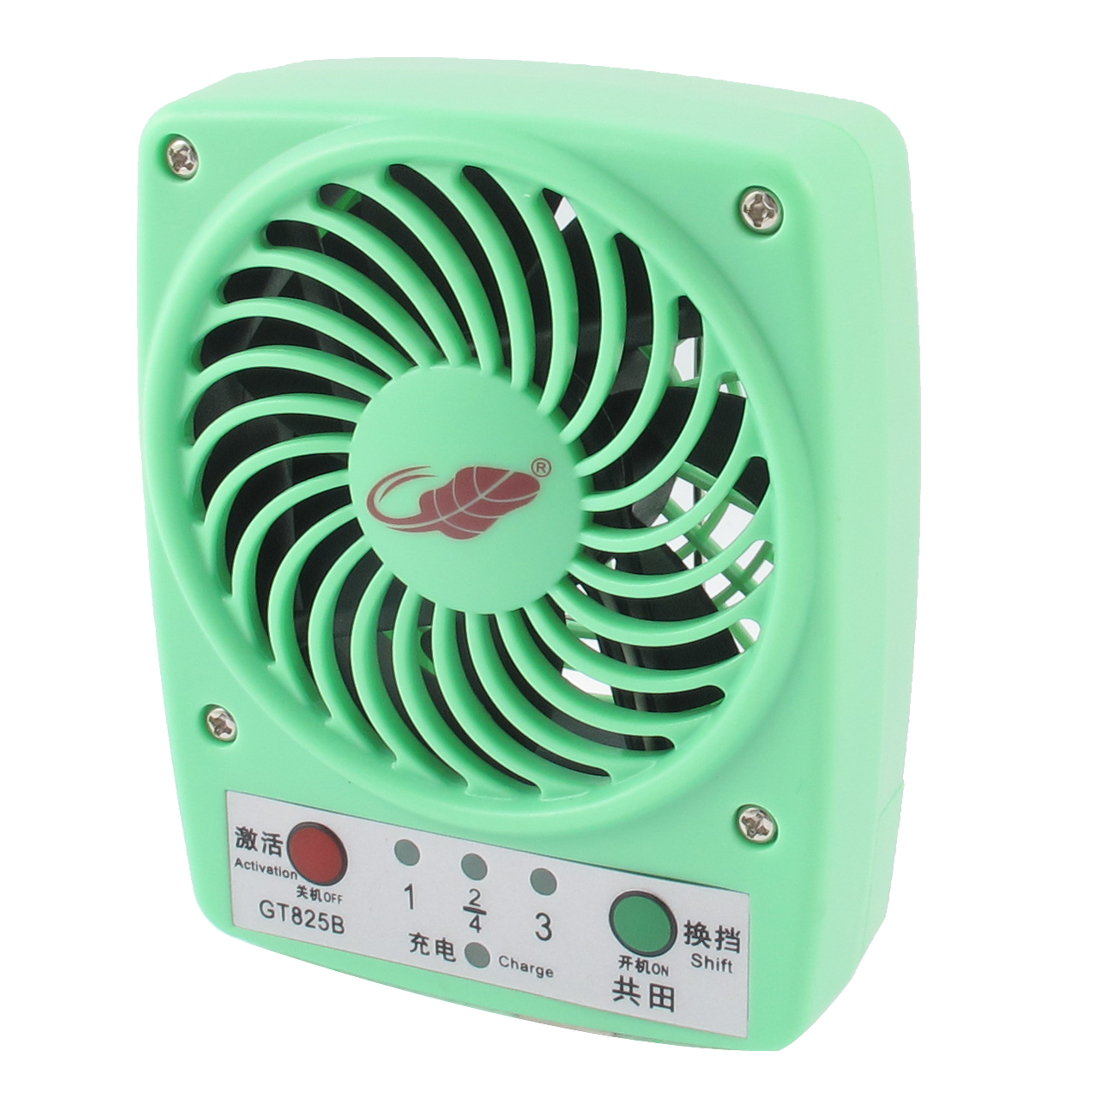 DC5V 4W Home Office Desk Portable Multifunction Mini Cooling Fan Green